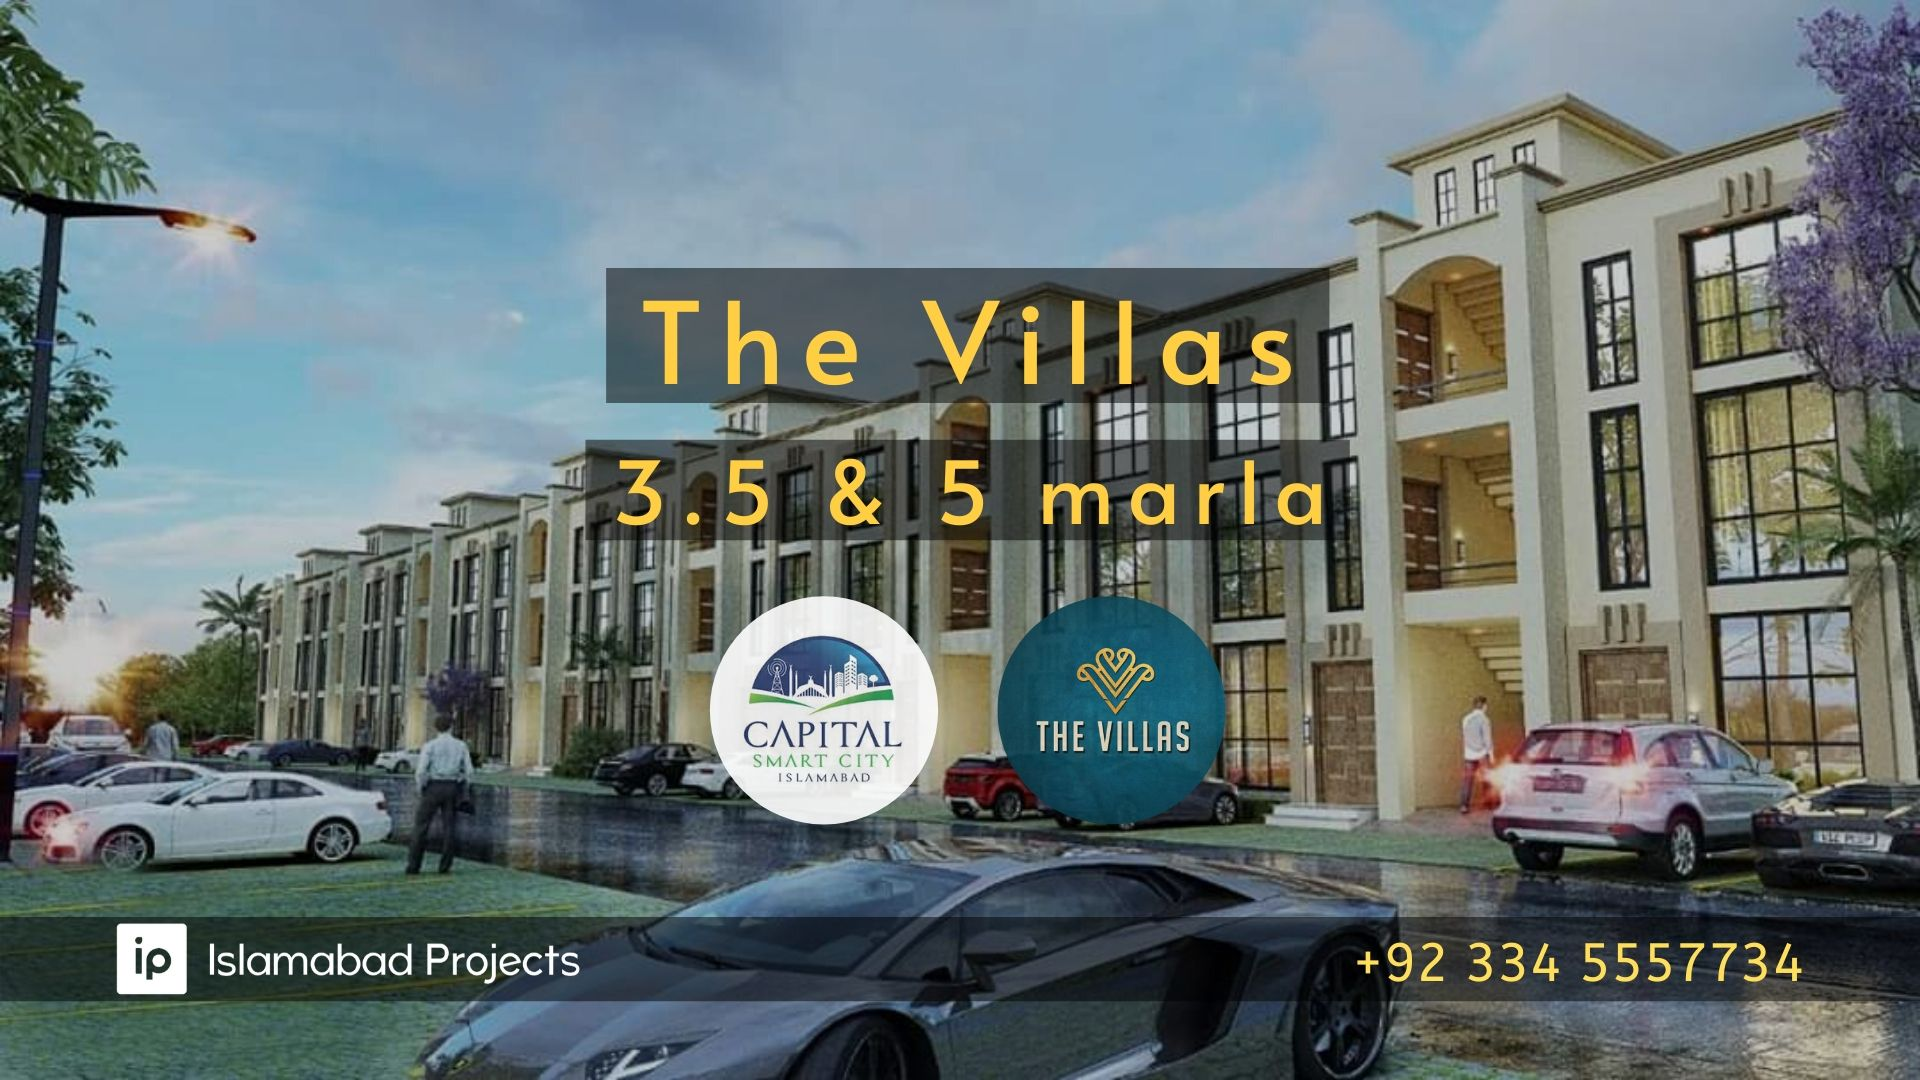 The Villa Apartments of 3.5 and 5 marla launched by Capital Smart City - payment plan, floor plan